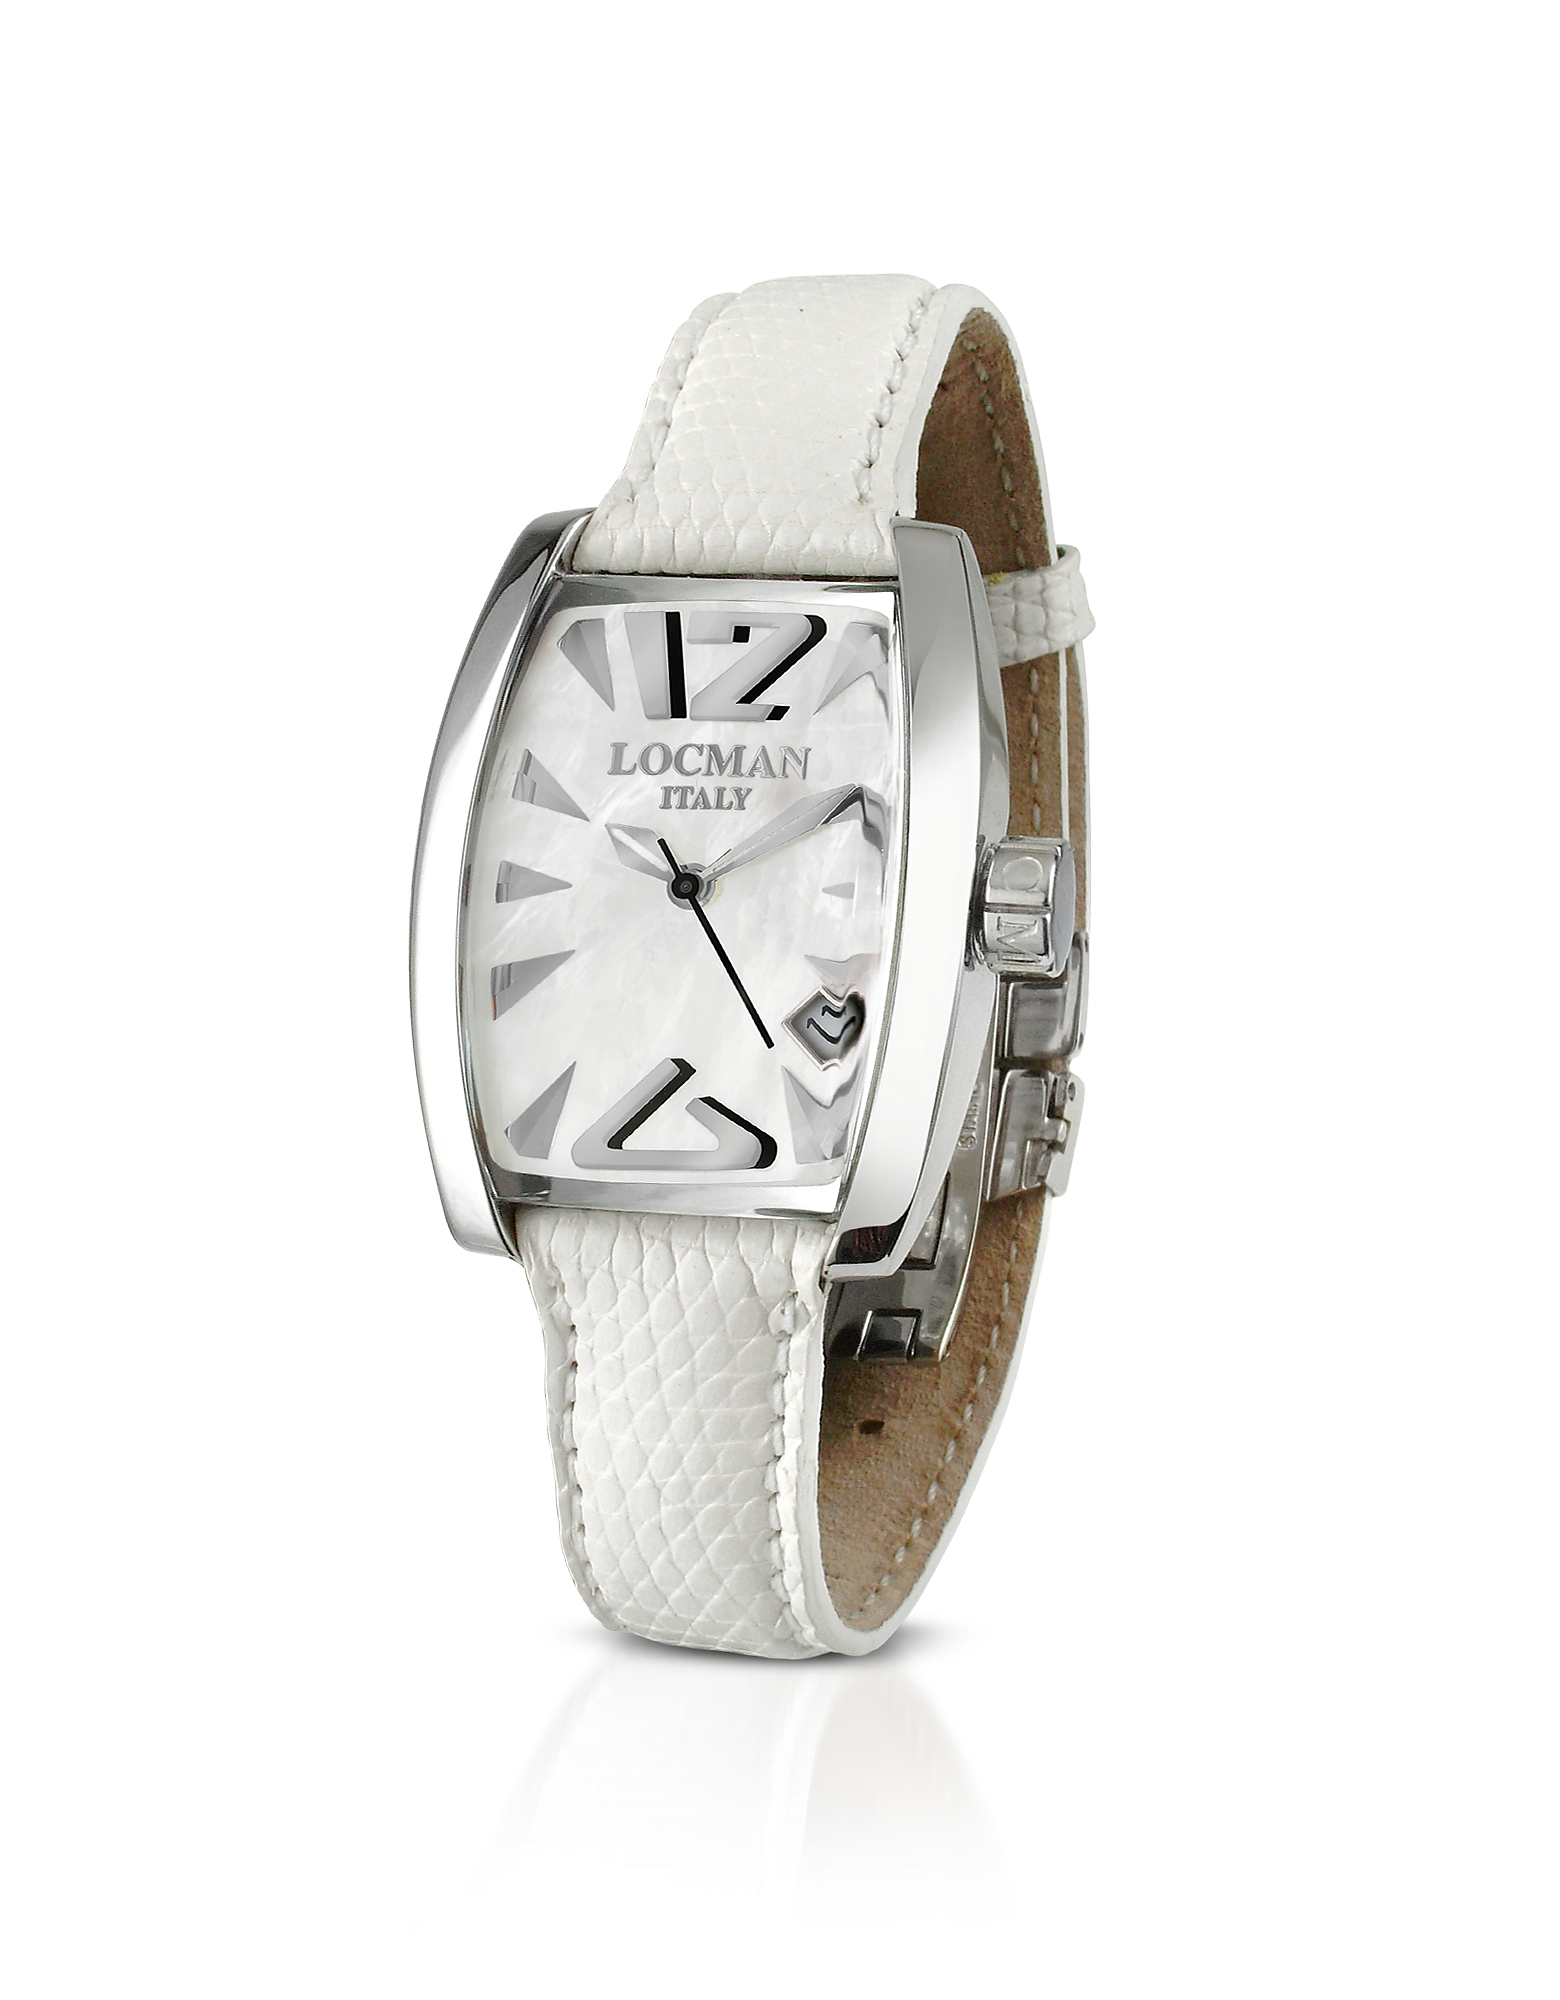 Locman Women's Watches, Panorama White Mother-of-Pearl Dial Dress Watch